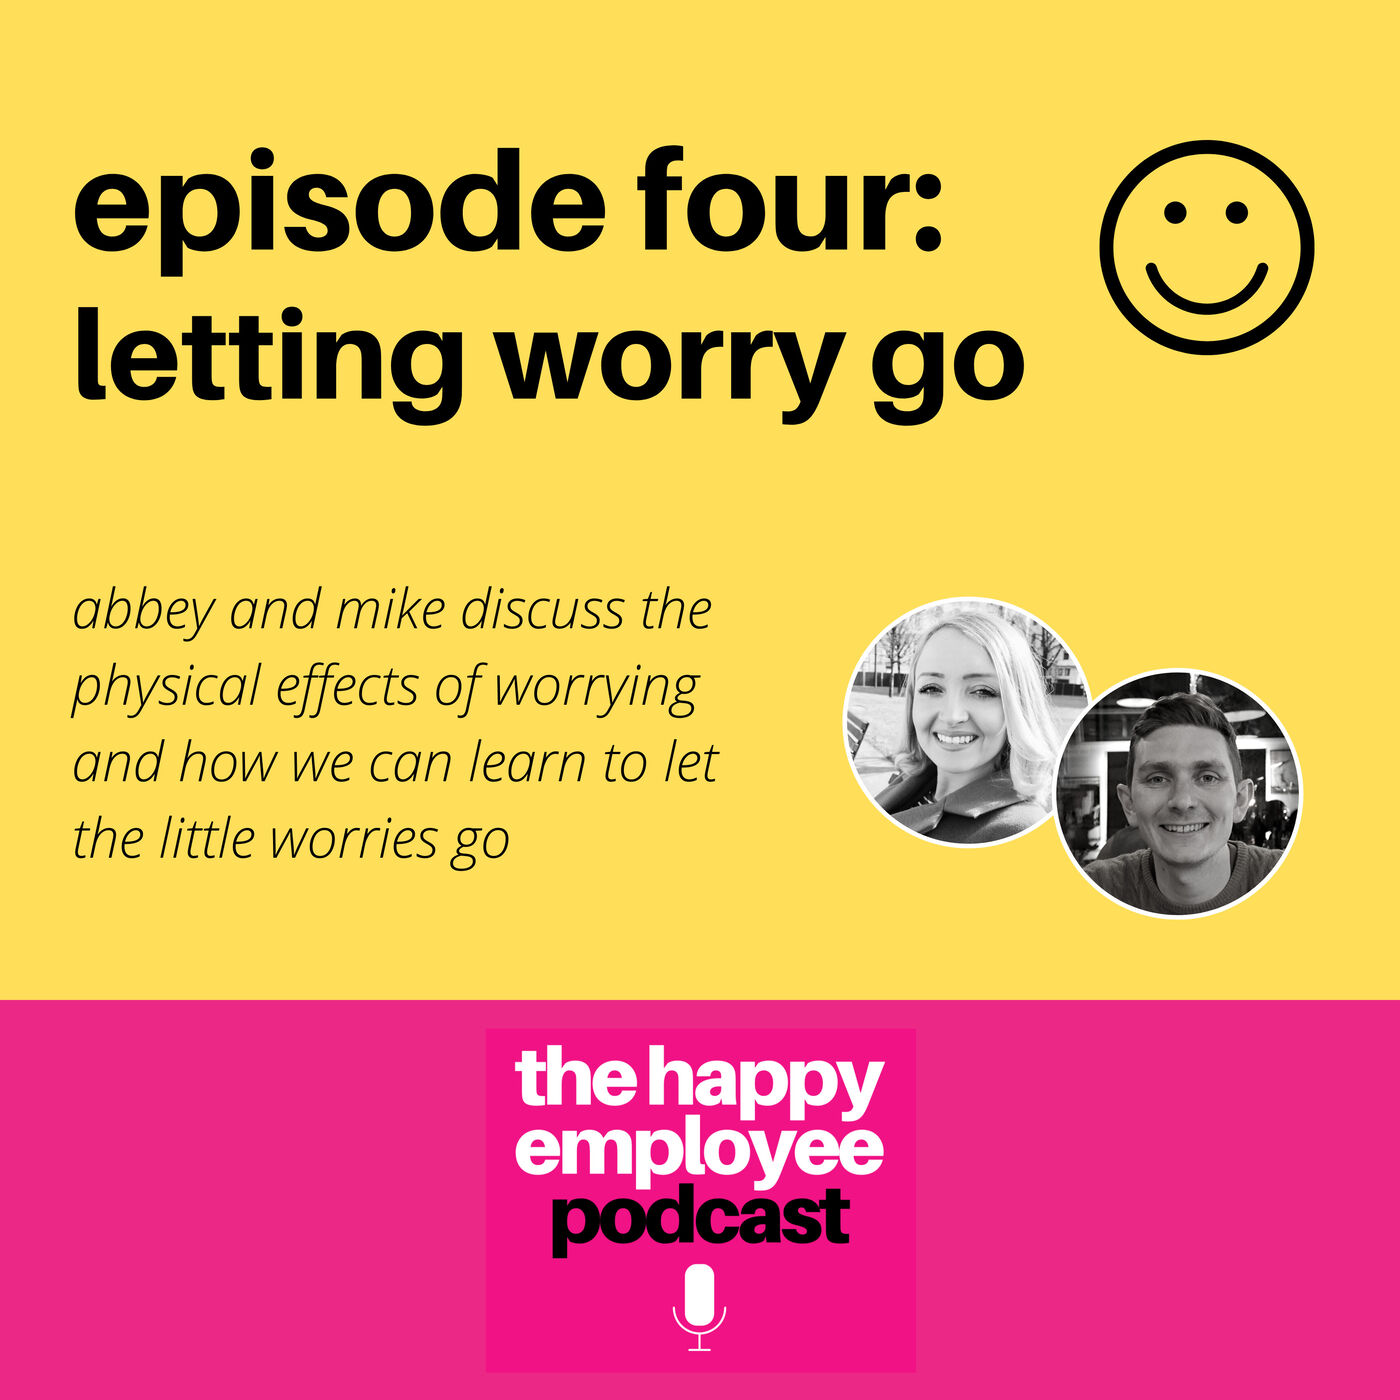 Letting worry go